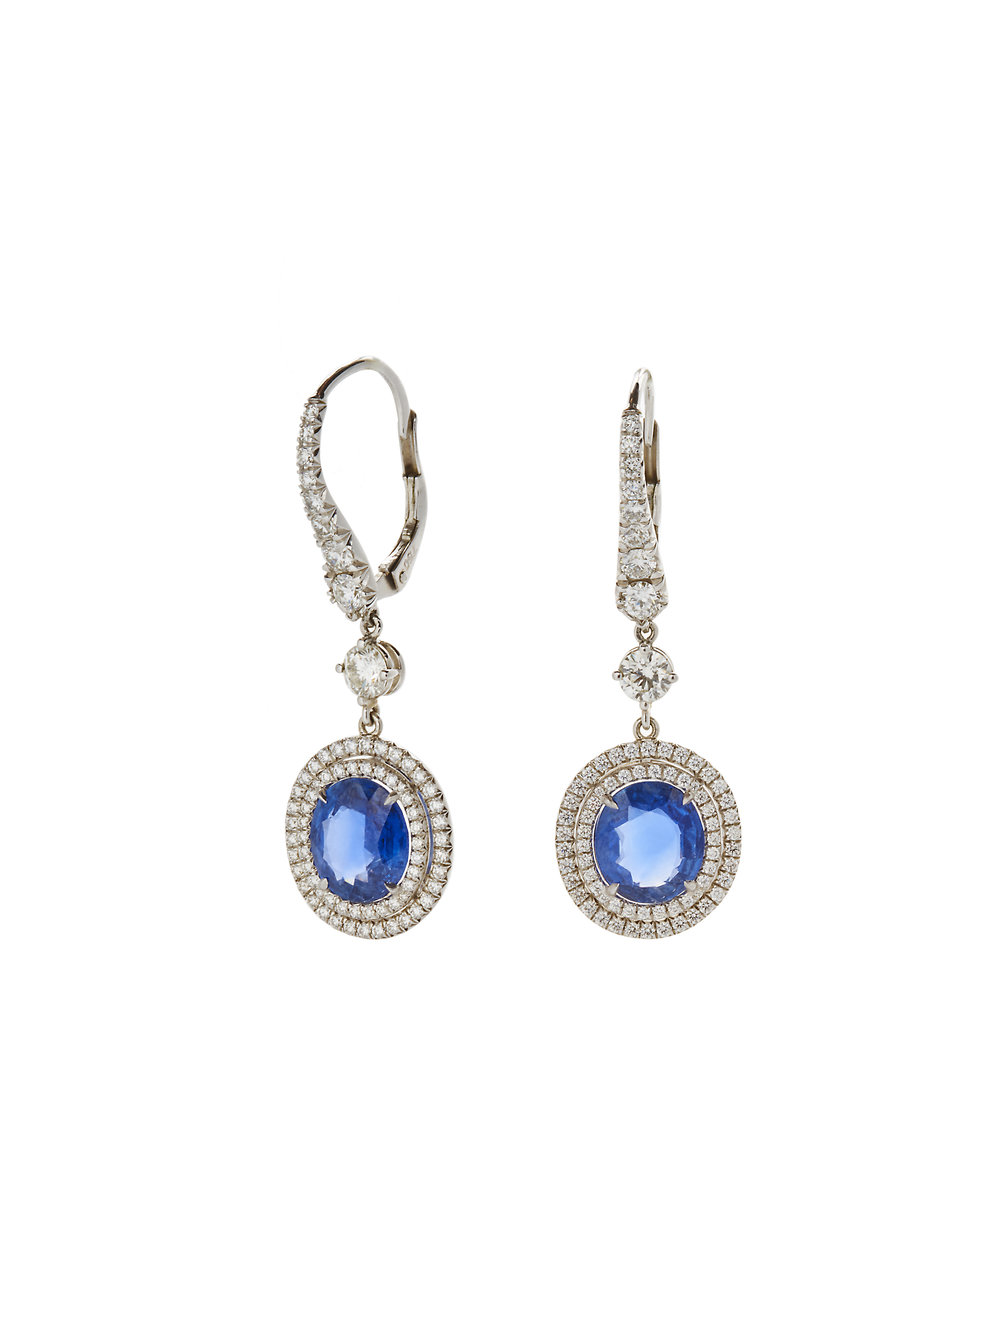 GUINEVERE EARRINGS    18 K GOLD 1.63 CT OF DIAMONDS 6.5 CT OF NATURAL SAPPHIRE